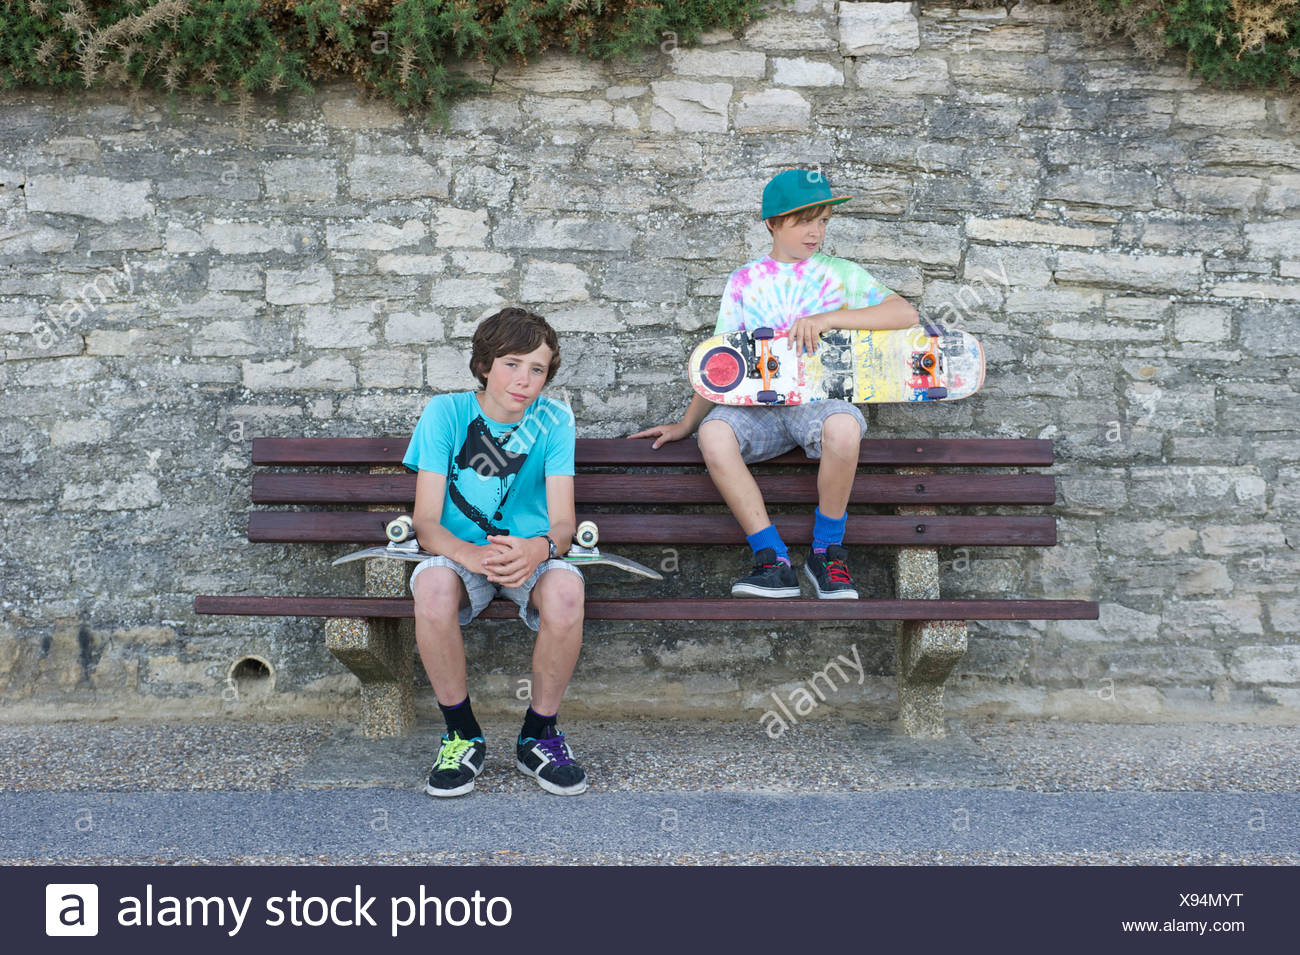 Portrait of two boys sitting on bench holding skateboards - Stock Image